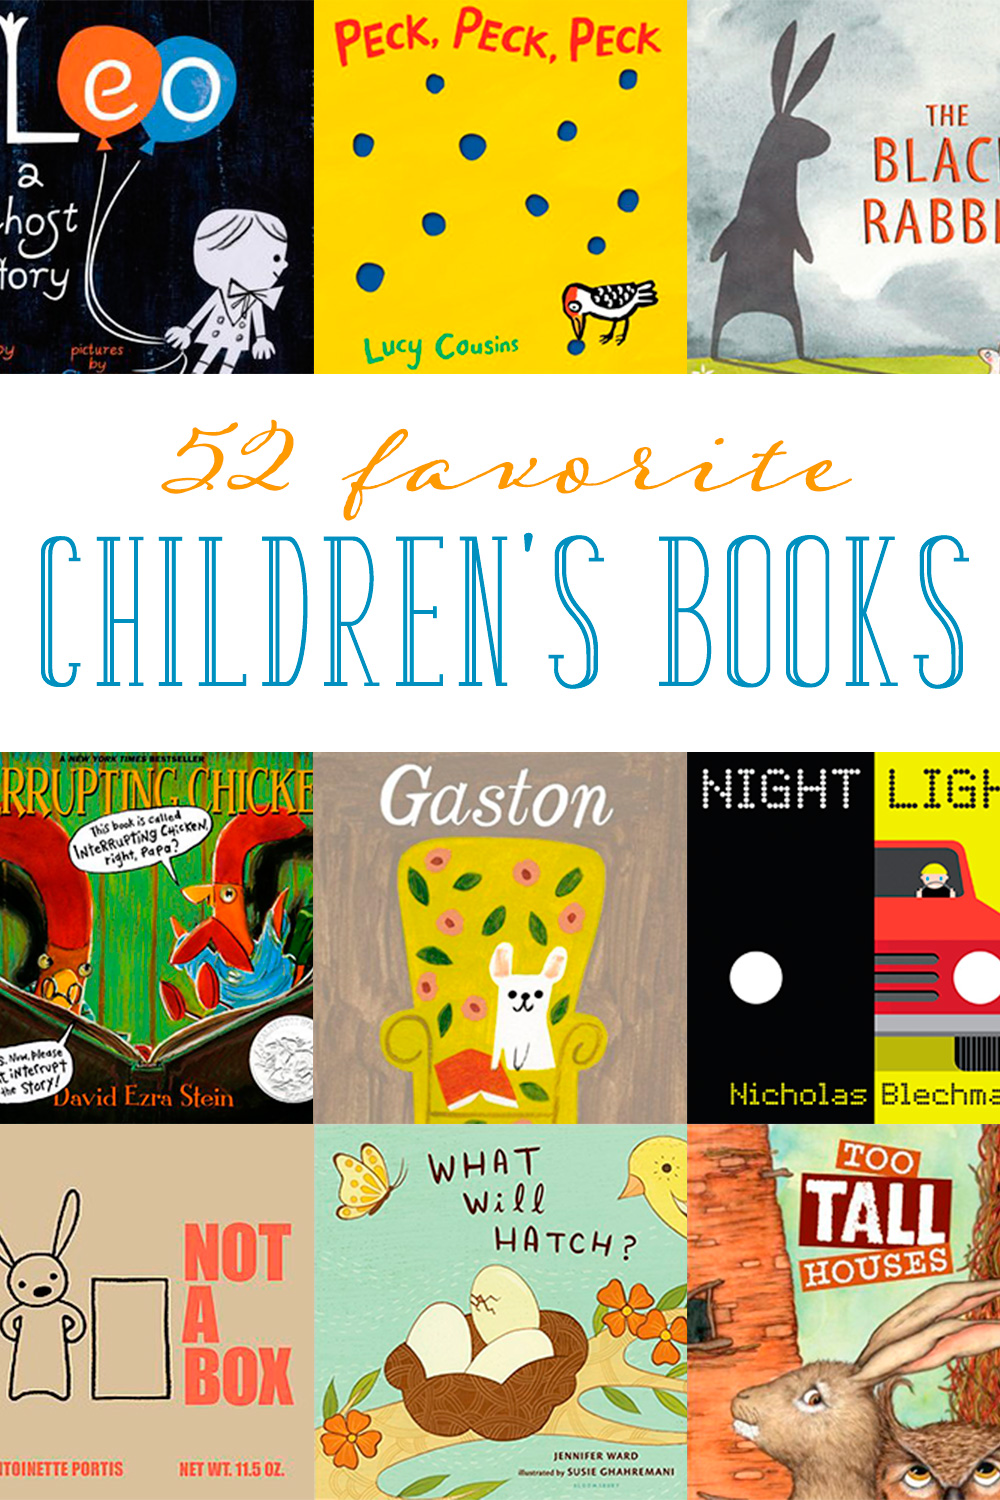 Reading aloud to our children encourages their interest in books. Here are 52 children's books to read throughout the year.